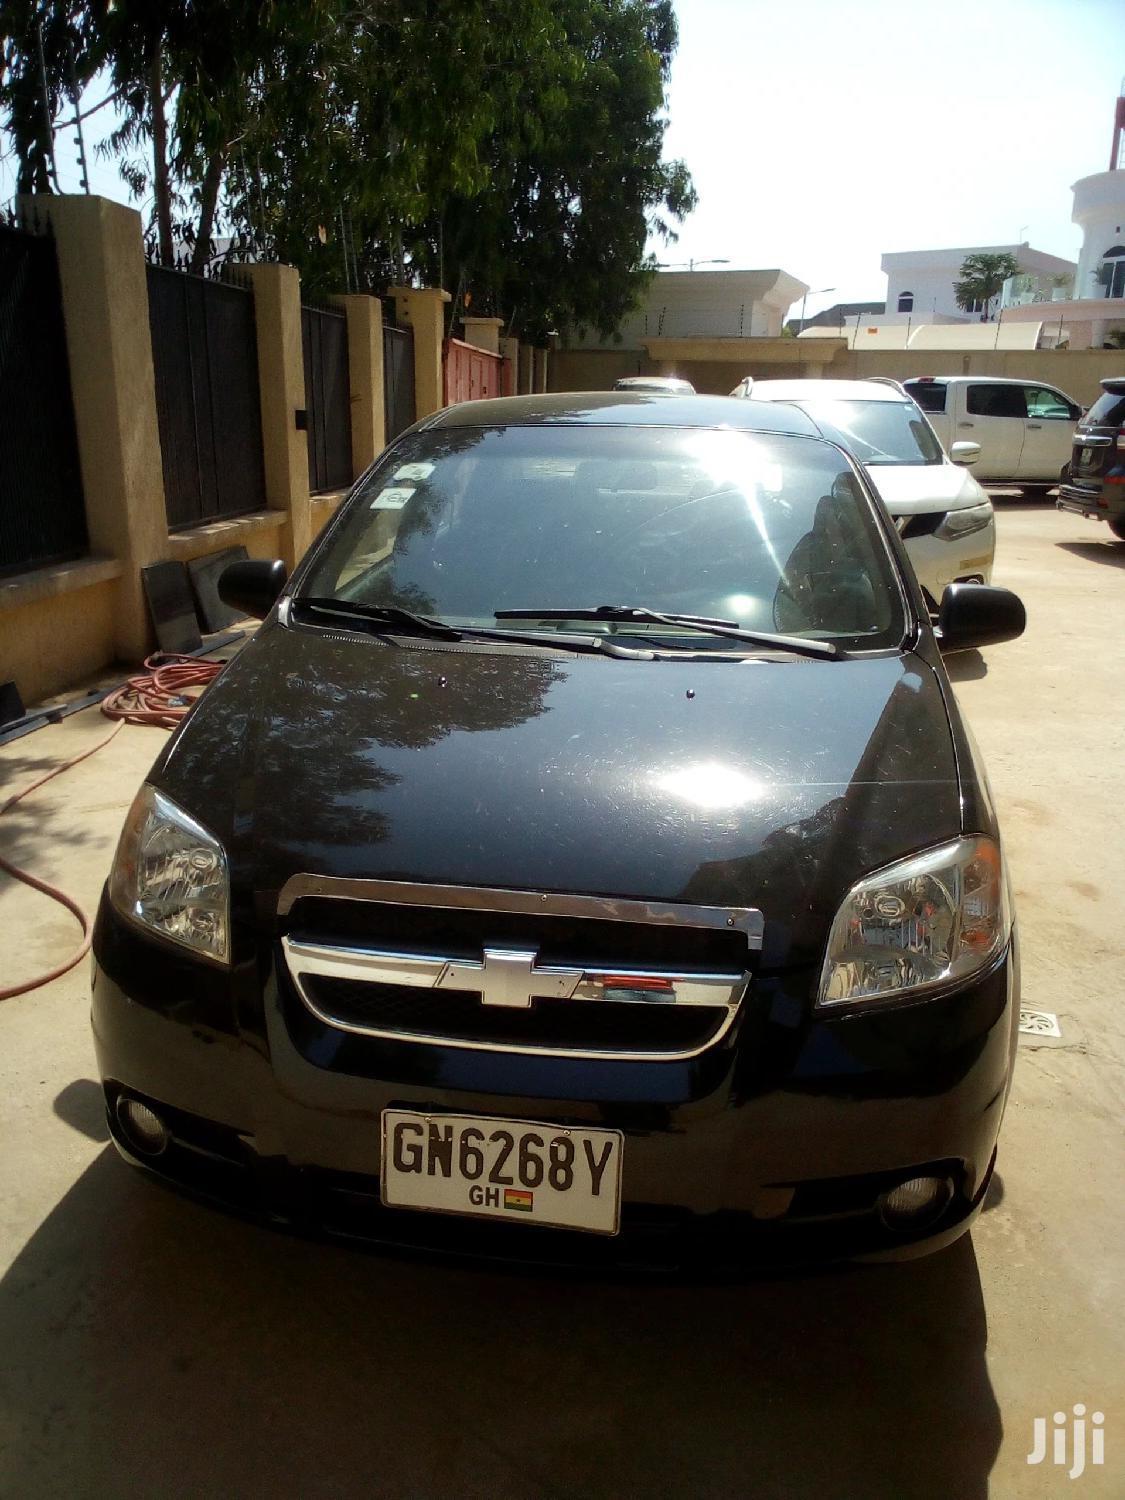 Chevrolet Aveo 2003 Black | Cars for sale in East Legon, Greater Accra, Ghana